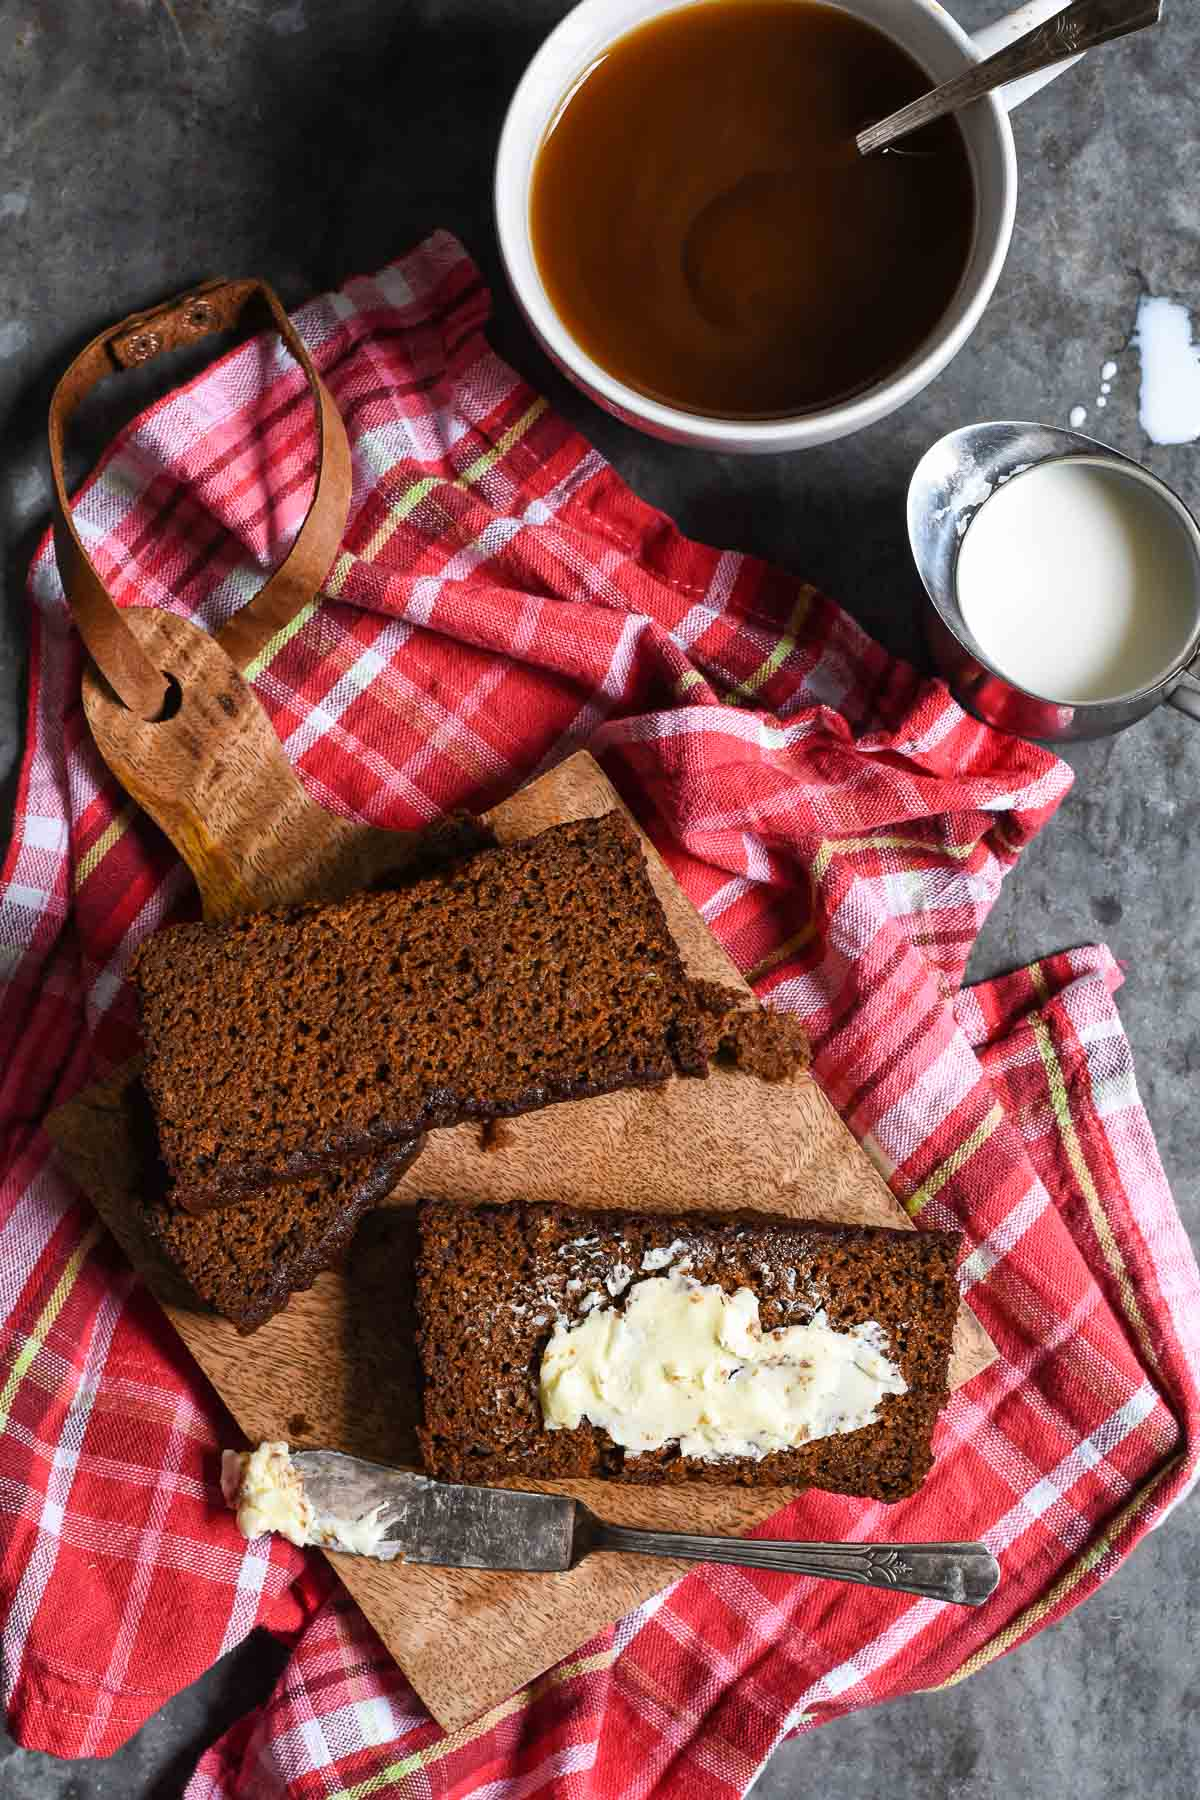 This Banana Ginger Bread combines the best of both worlds with sweet, moist bananas and spiced molasses gingerbread.